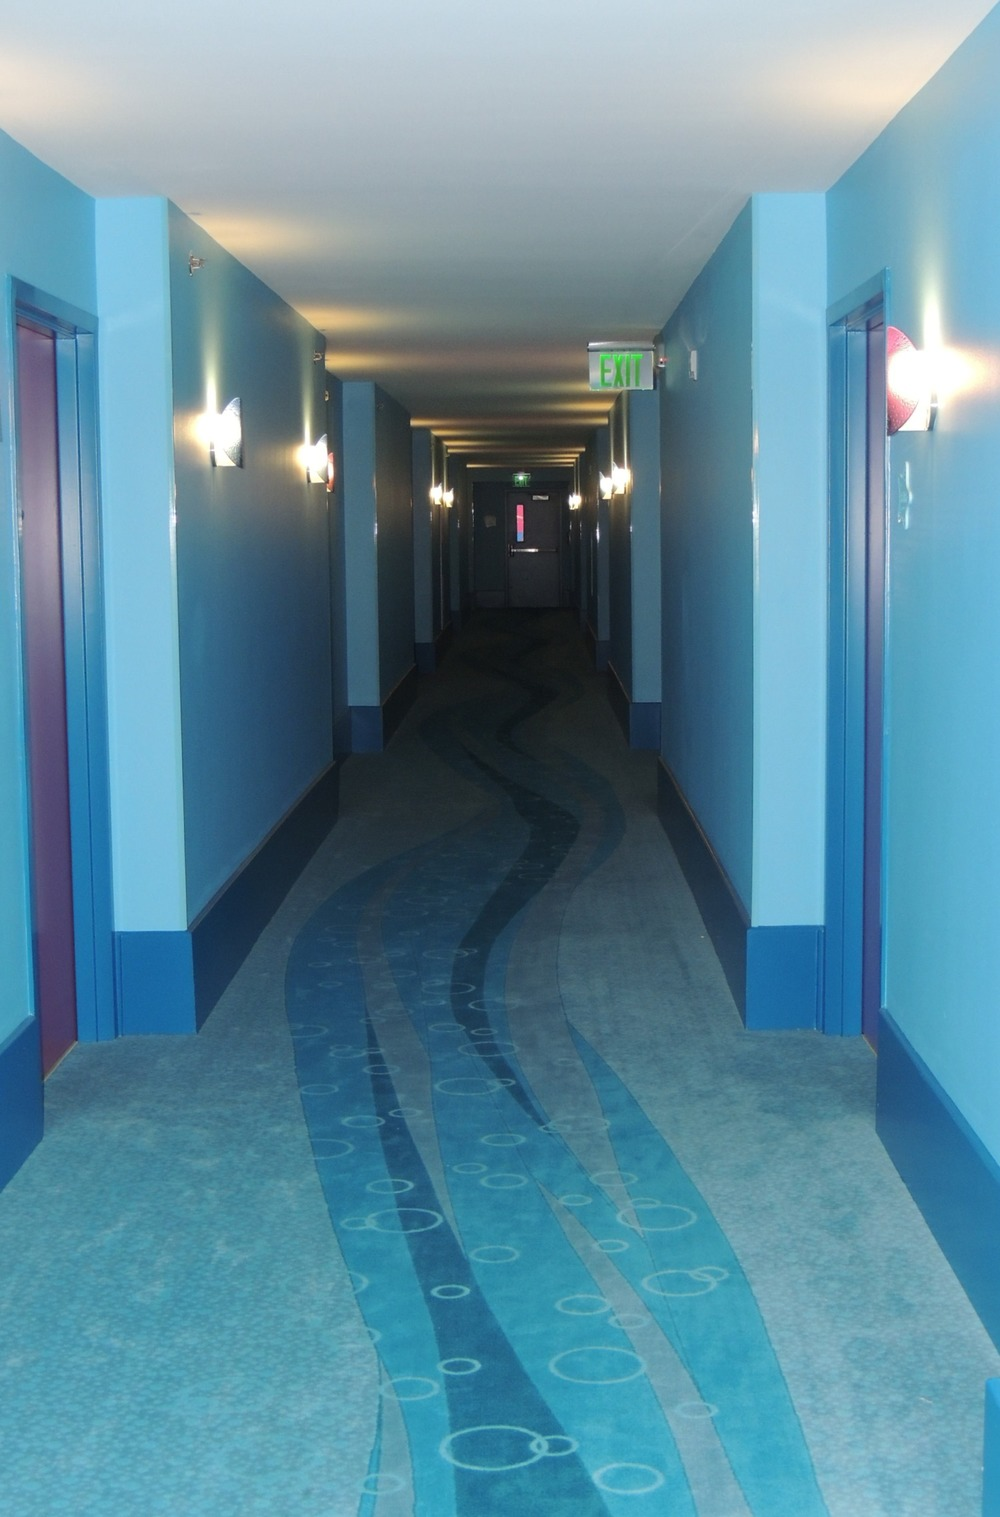 Art-of-Animation-interior-hallway.JPG